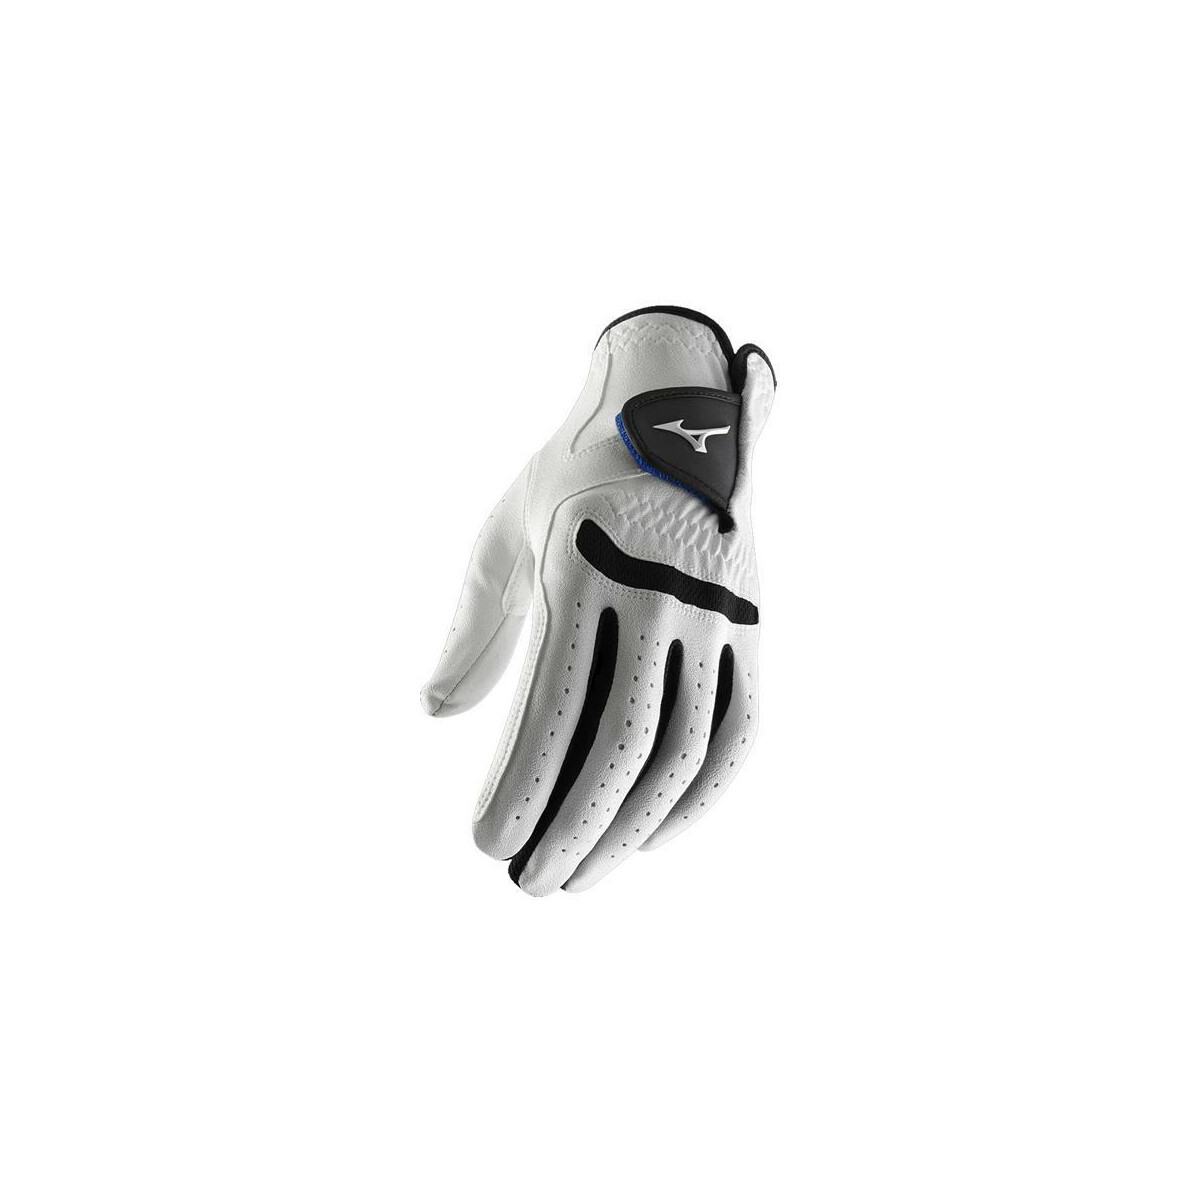 **Pack of 1** Mizuno 2015 All Weather Comp Mens Golf Gloves Left Hand (Right Handed Golfer) White/Black ML